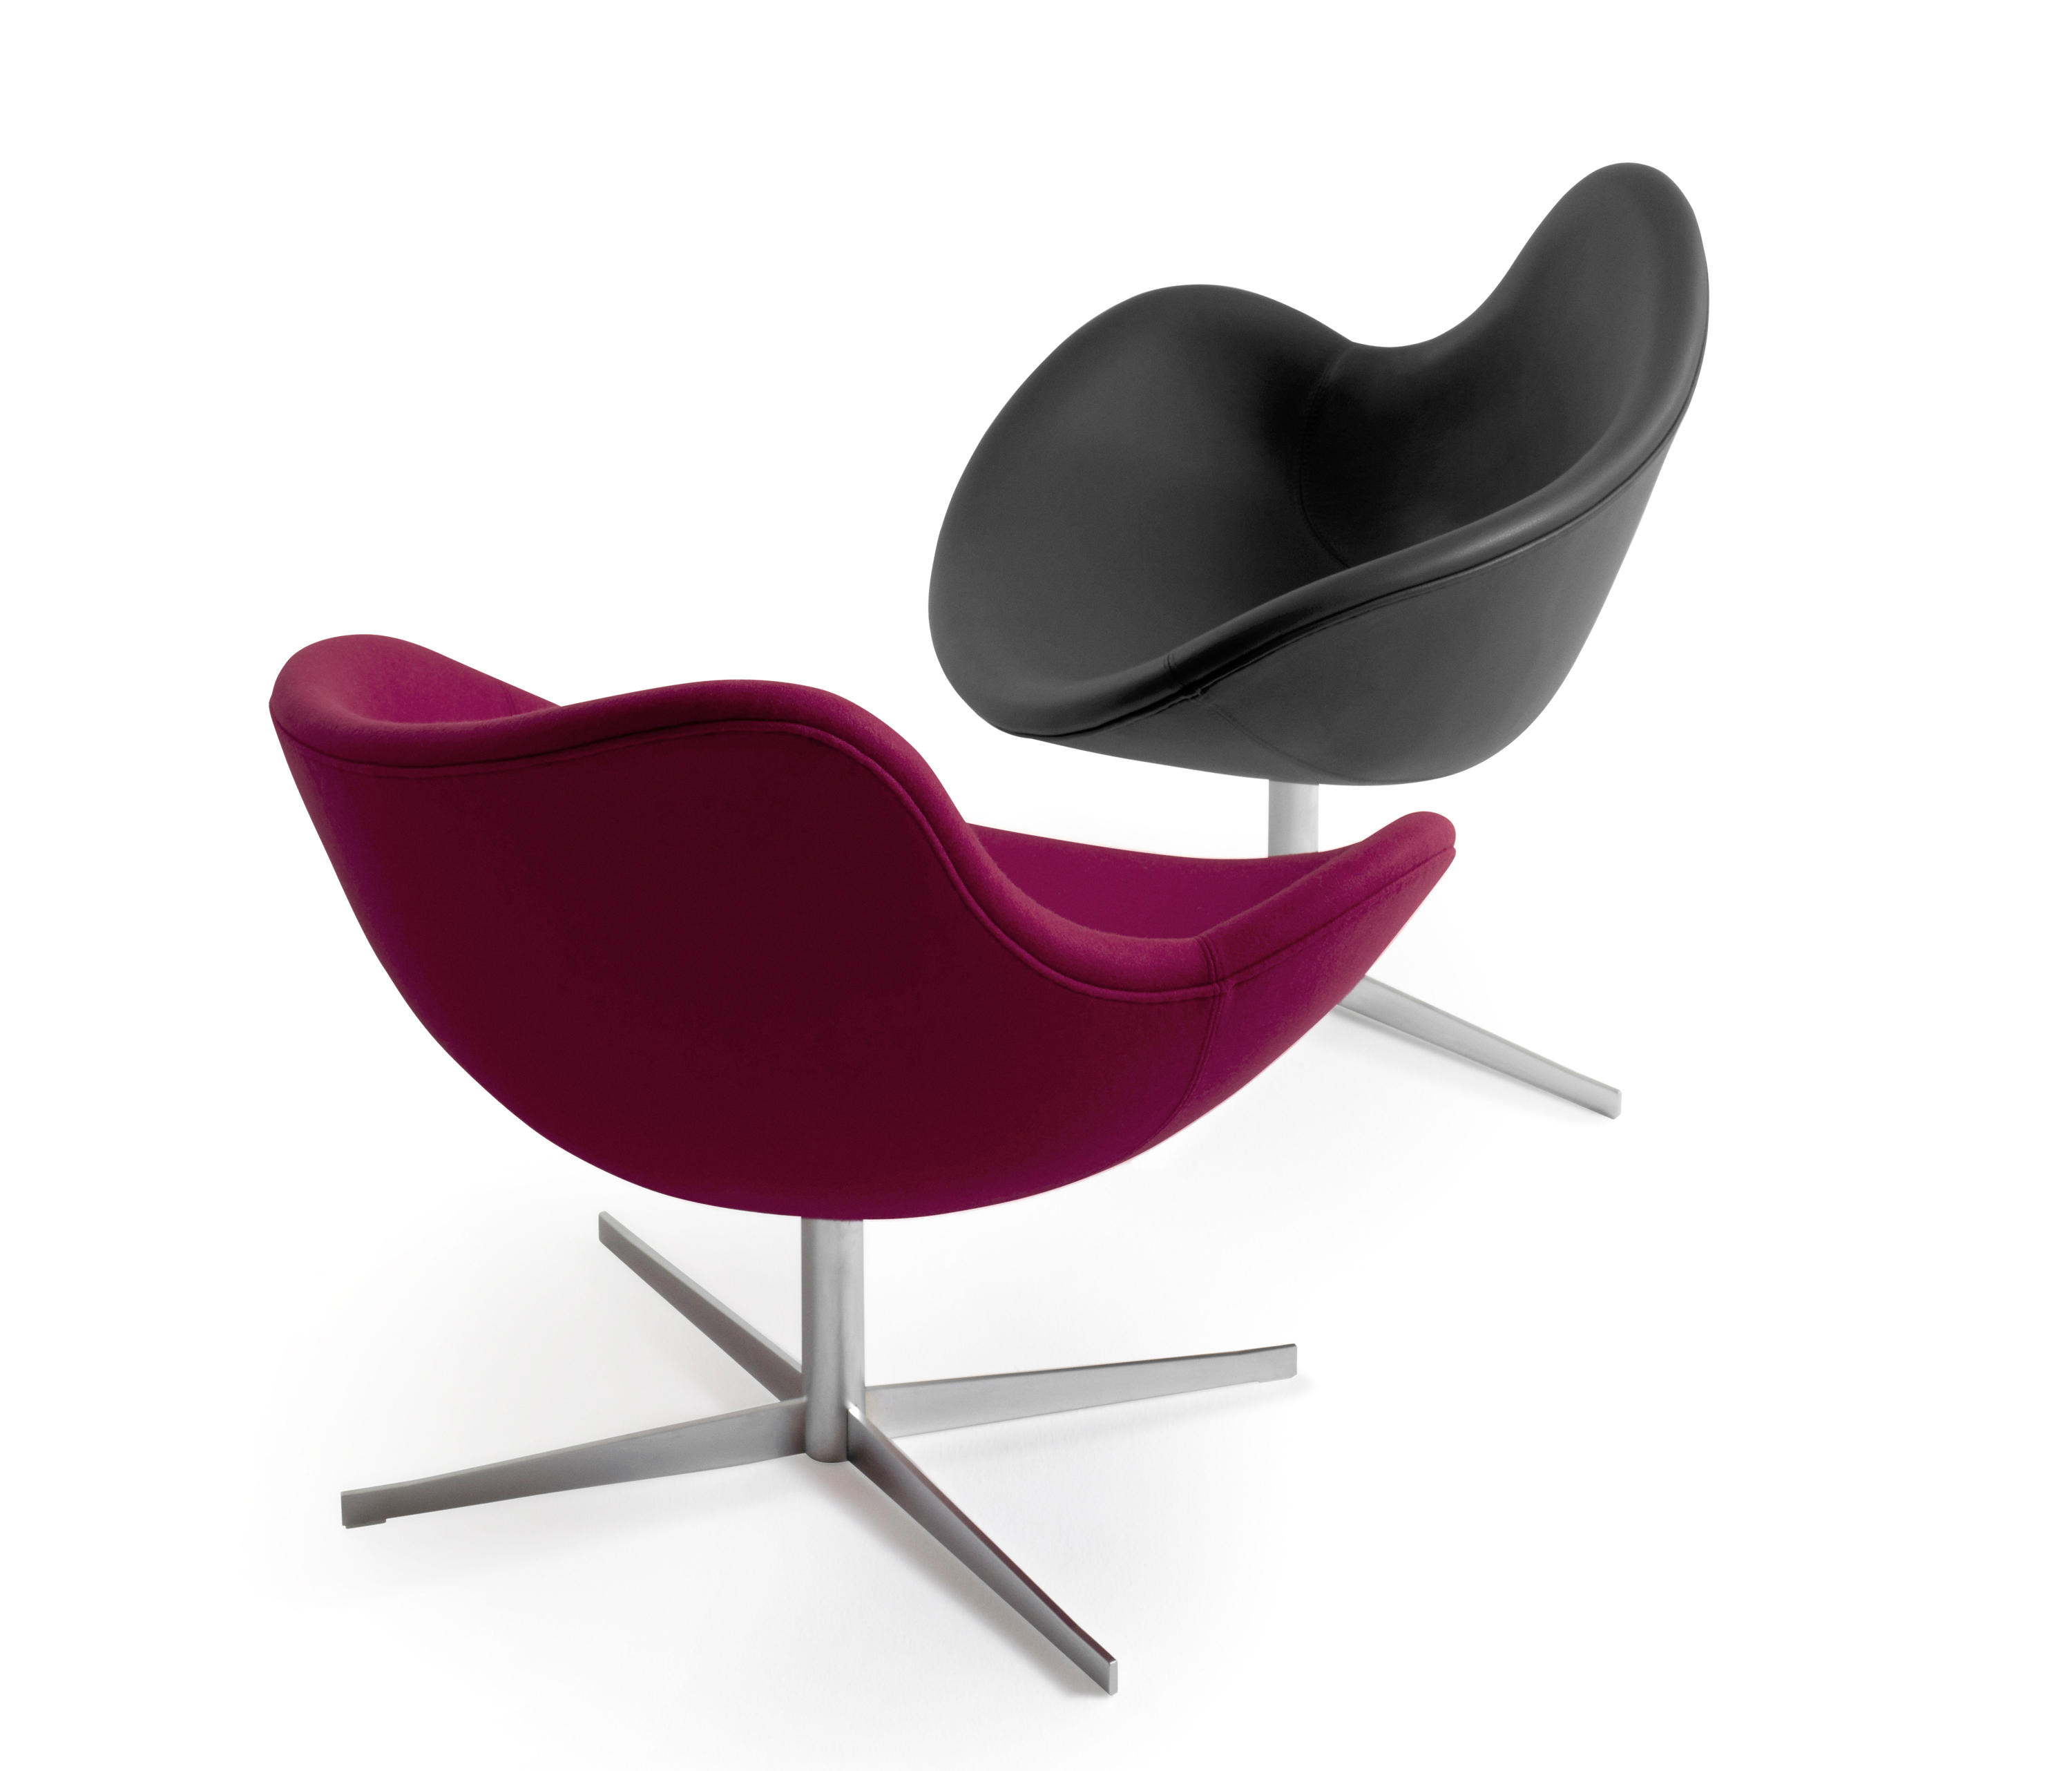 K2 SWIVEL CHAIR Lounge chairs from Halle